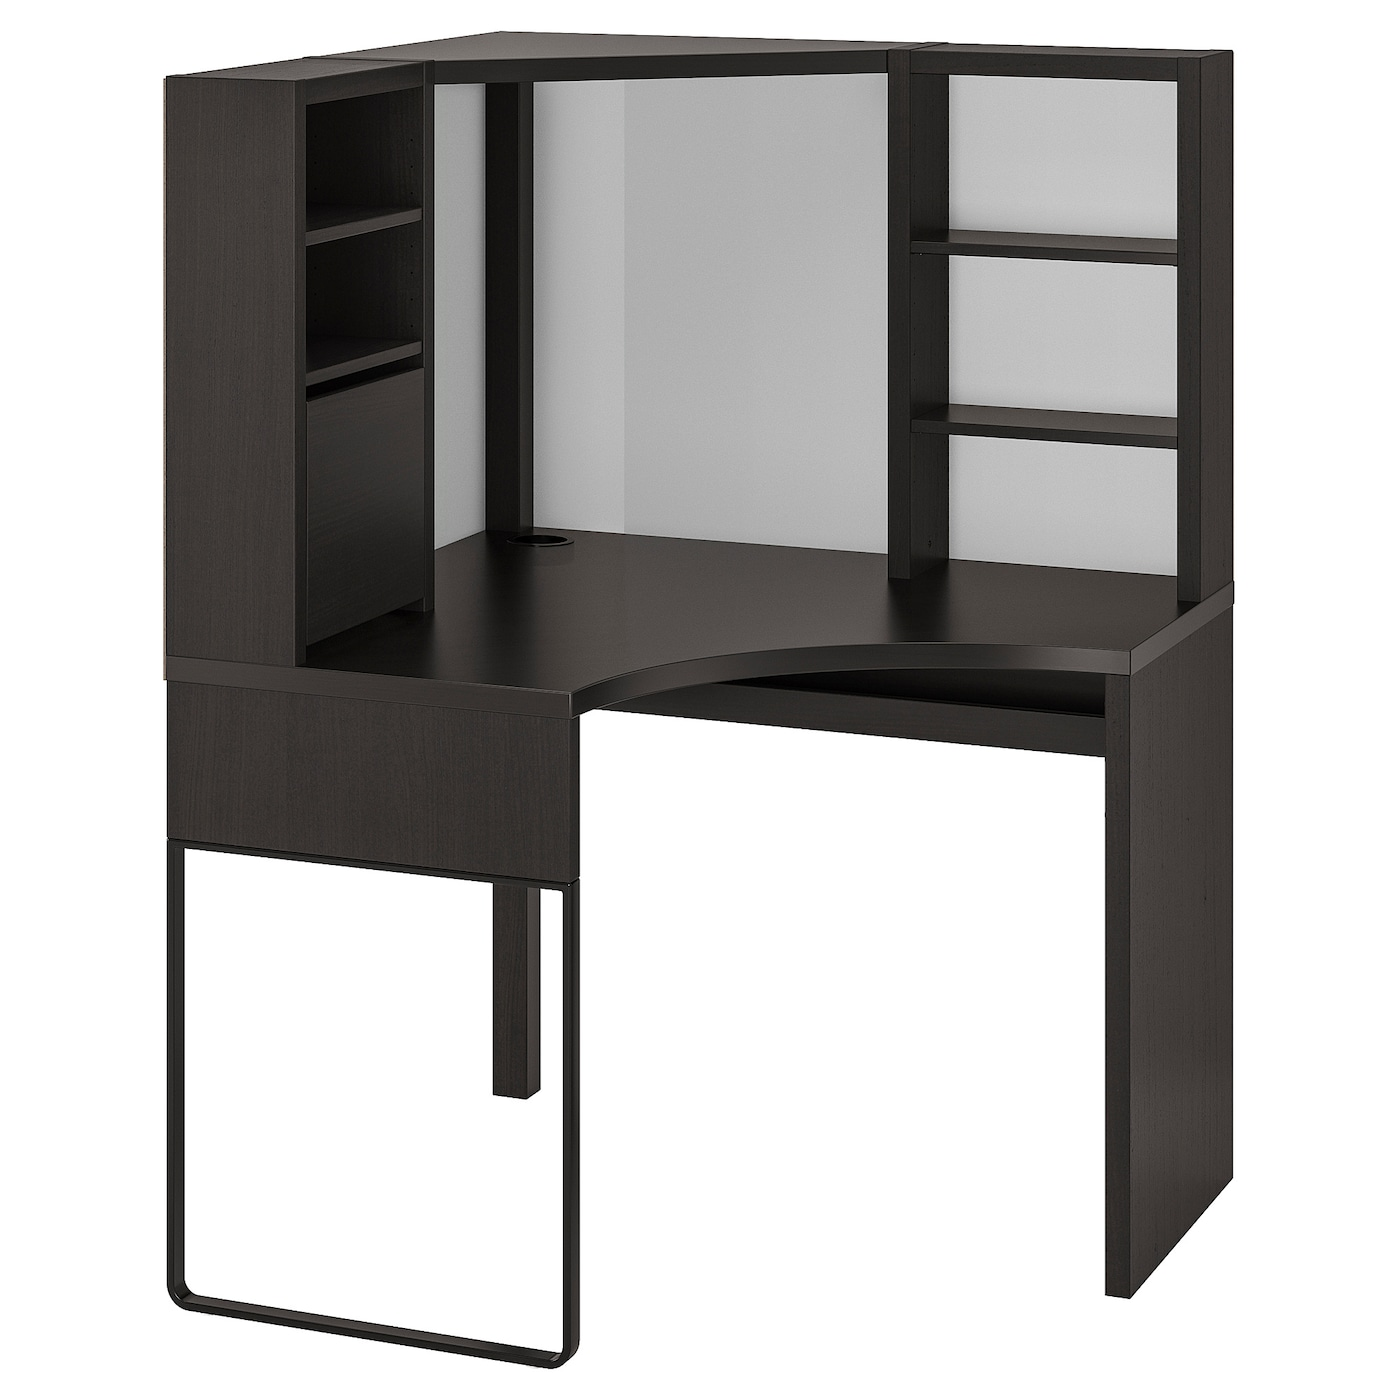 Image of: Micke Corner Workstation Black Brown 39 3 8×55 7 8 Ikea